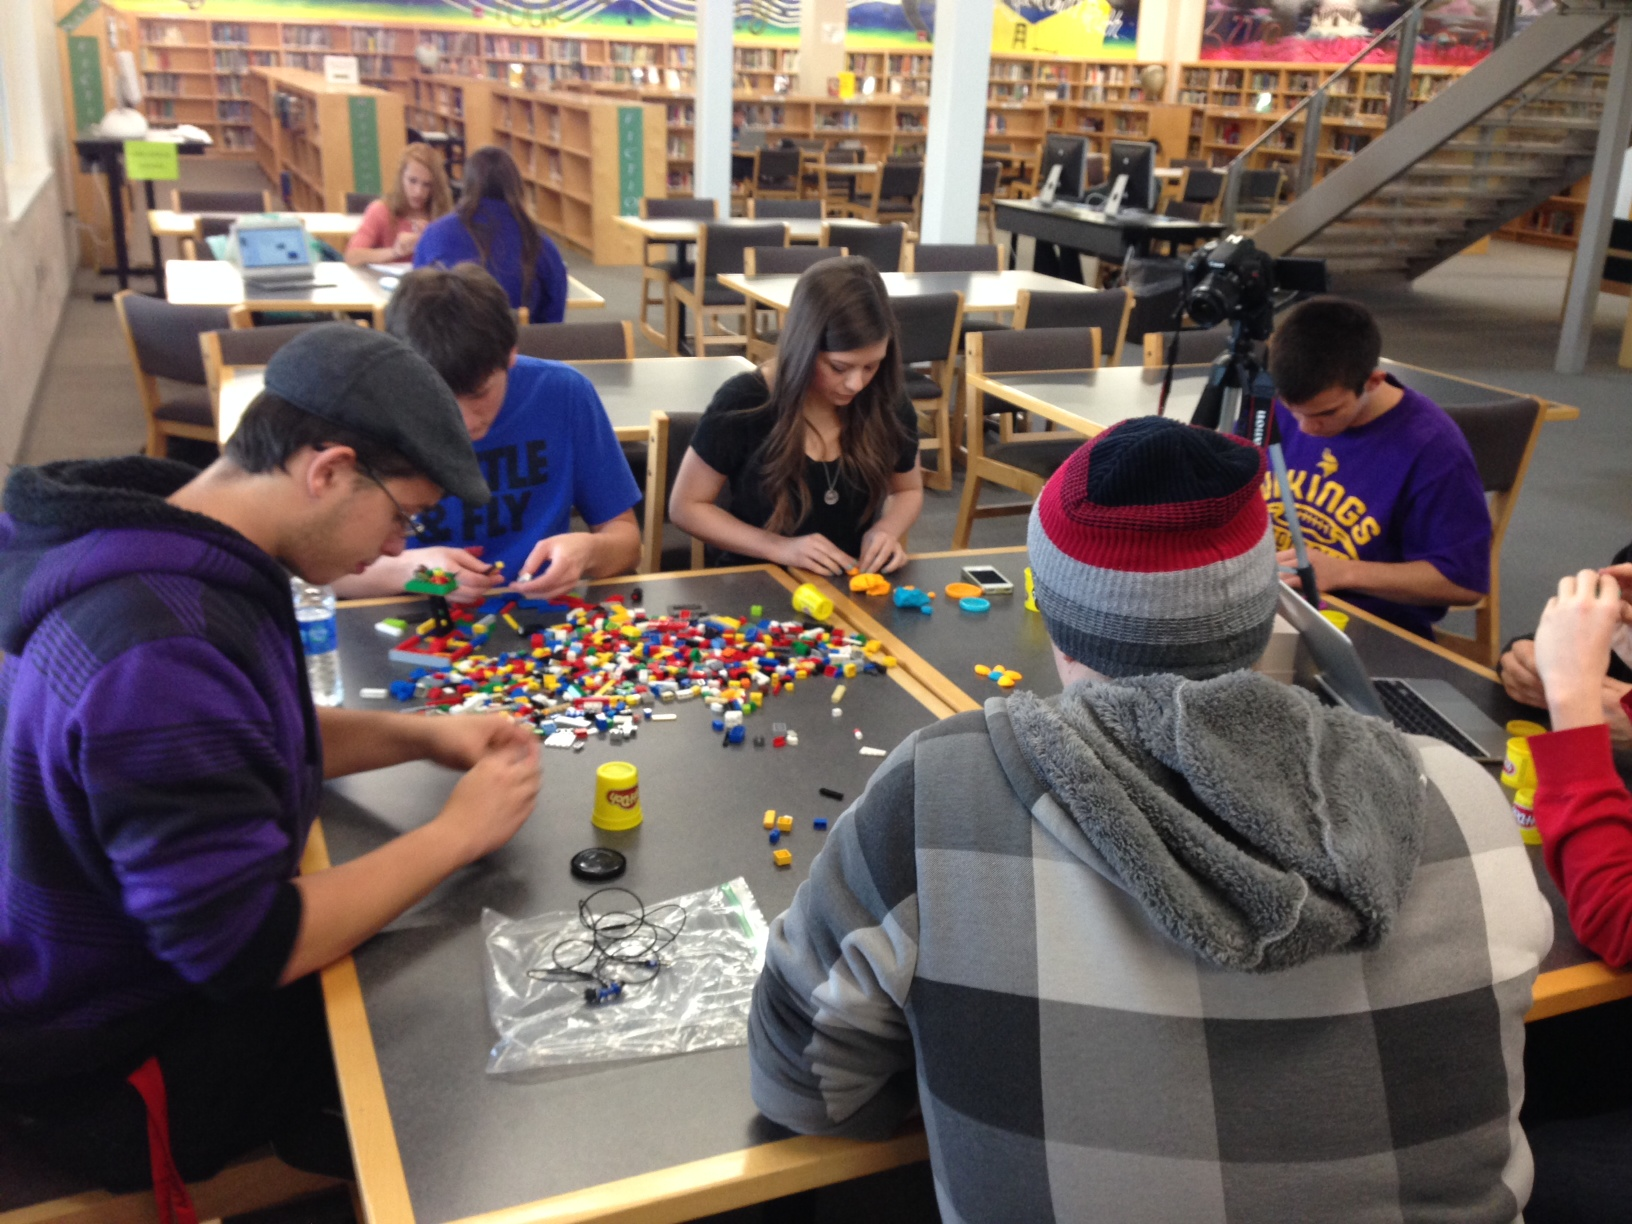 Local High School Library Launches Makerspace Programming